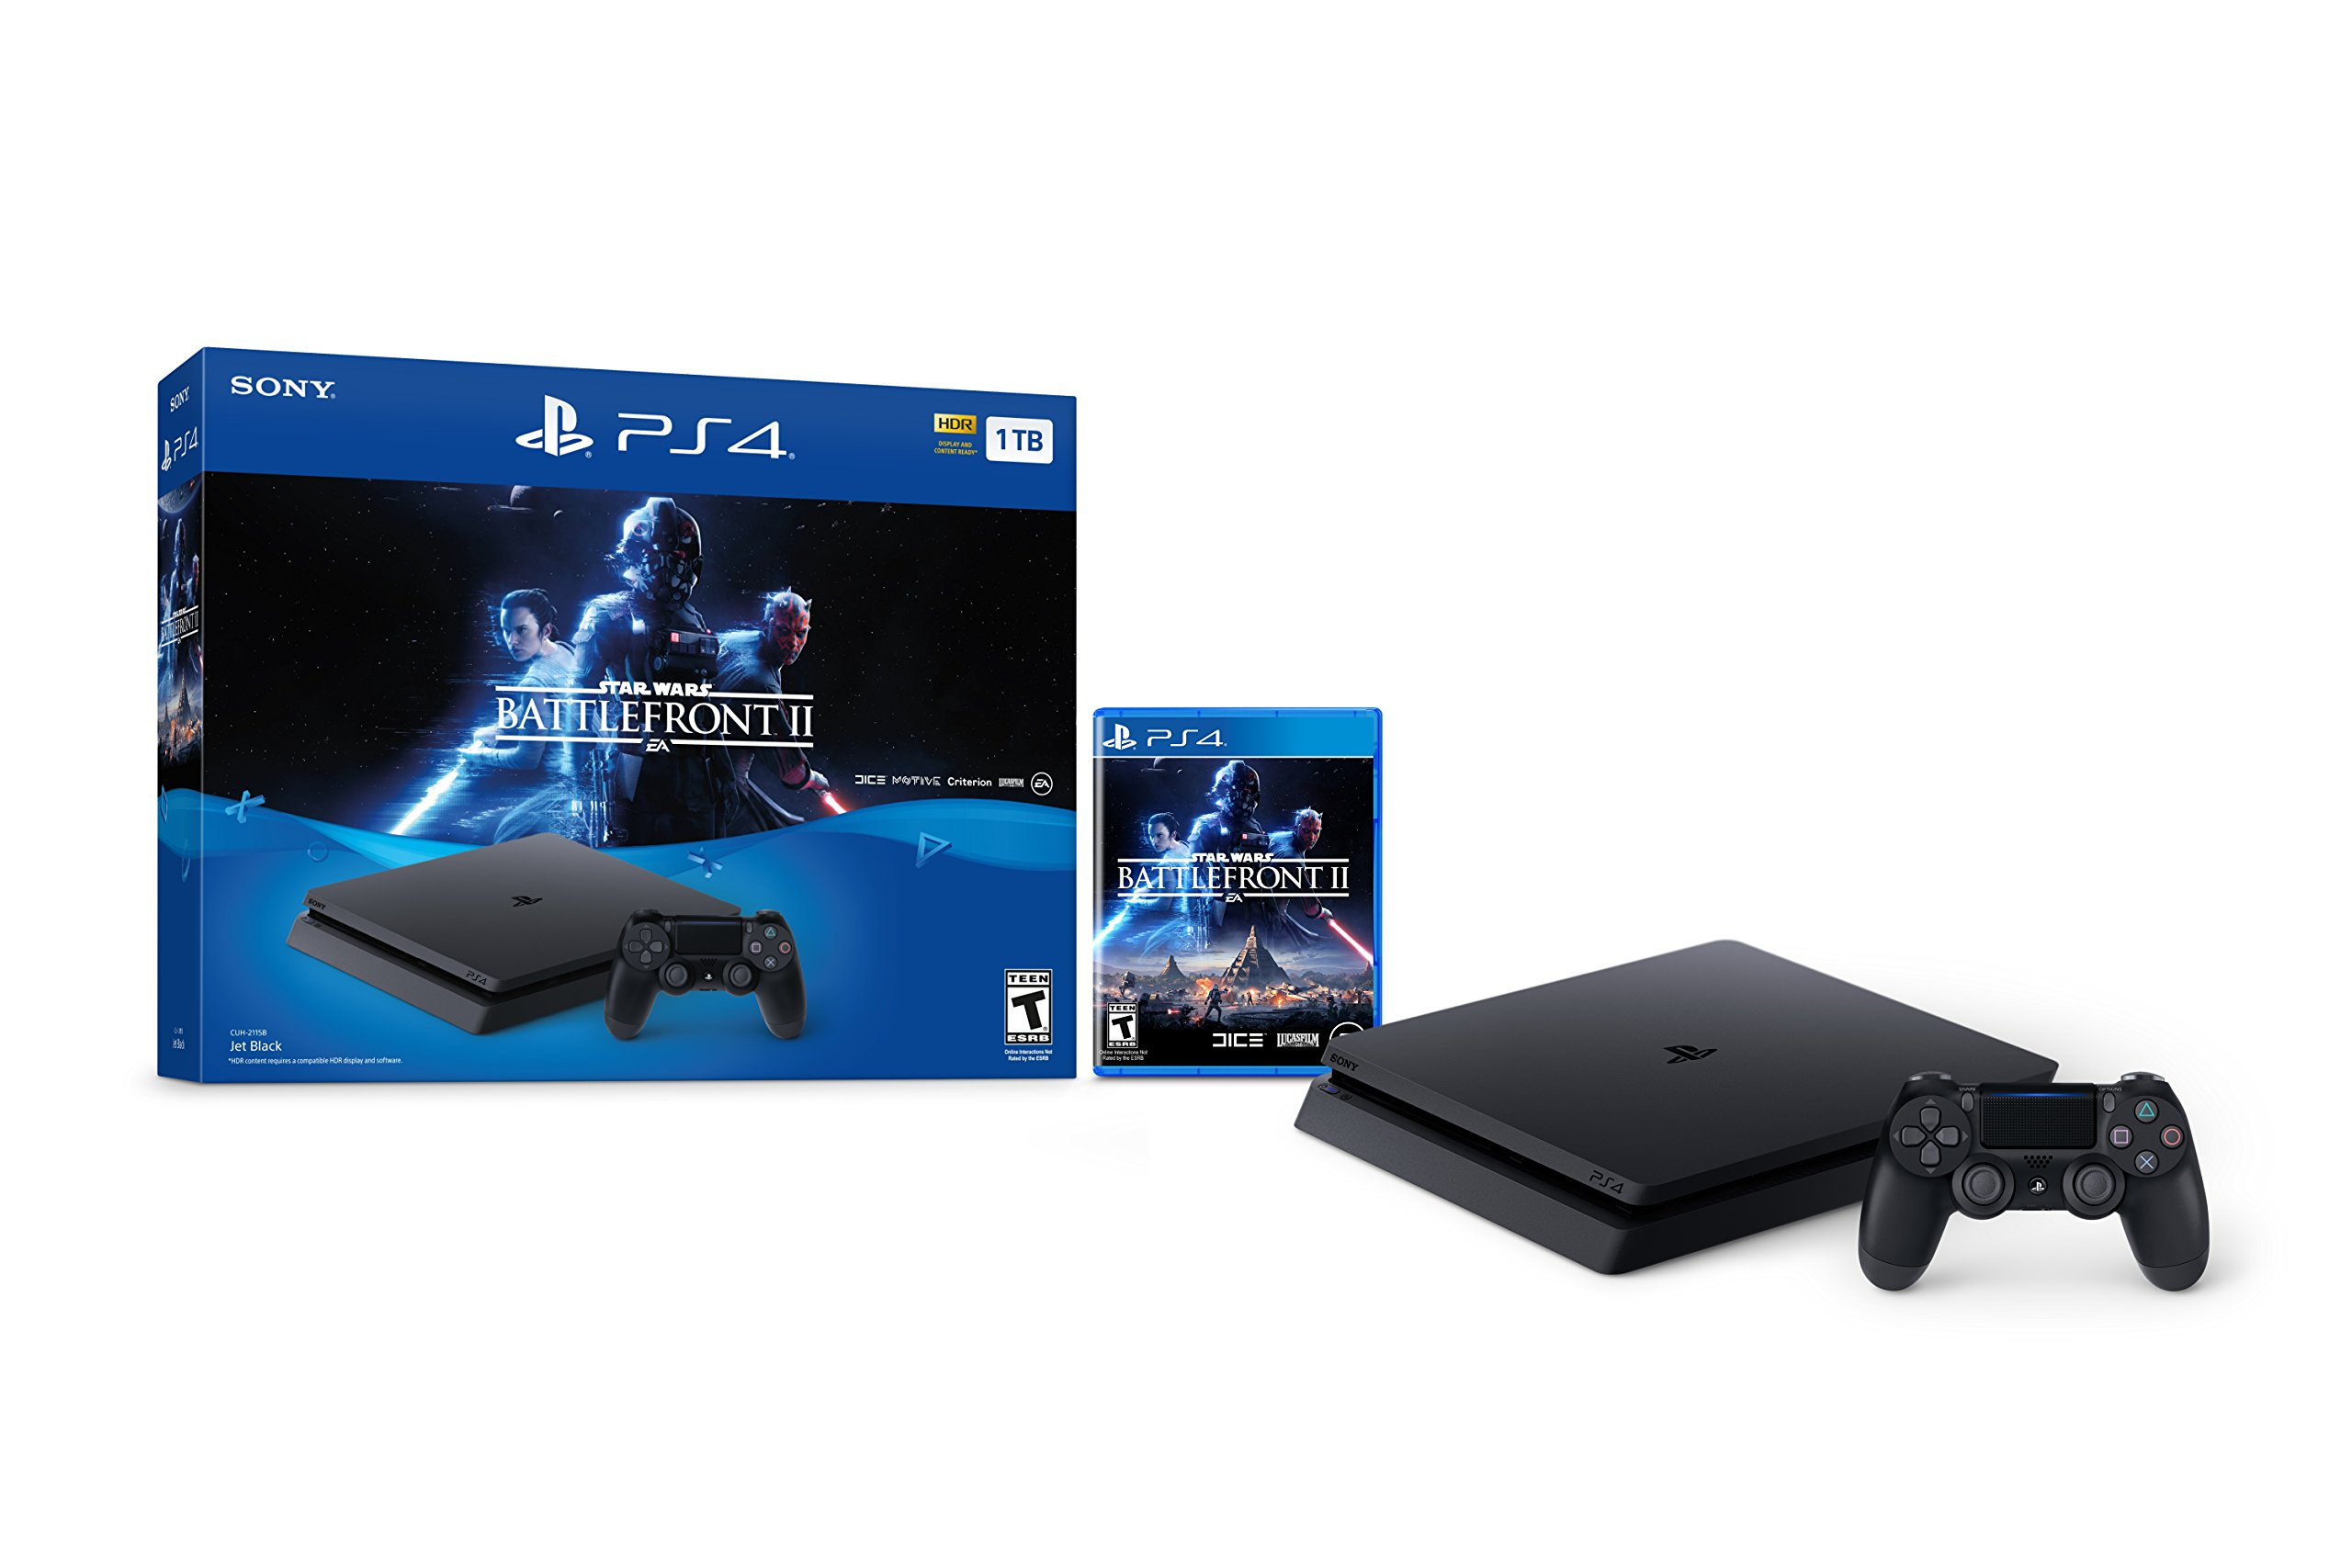 PlayStation 4 Slim 1TB Console - Star Wars Battlefront II Bundle [Discontinued] by Sony